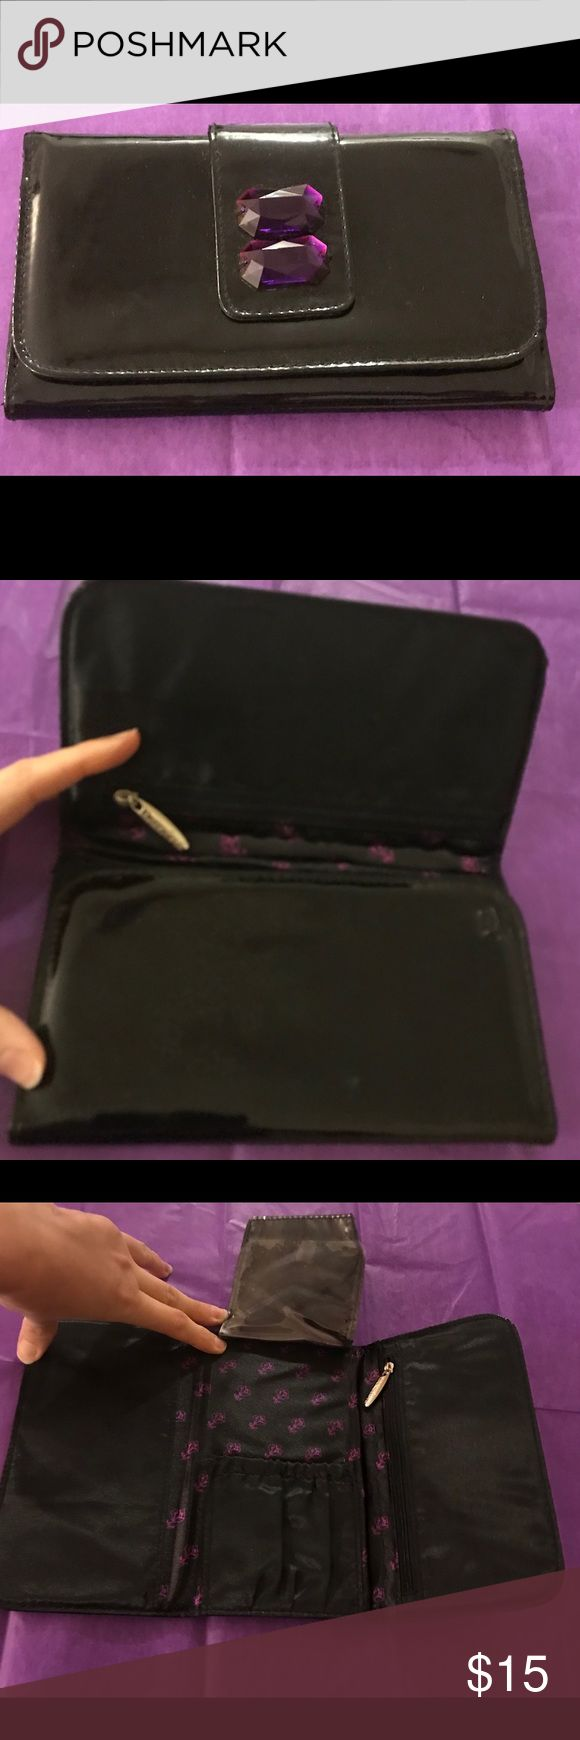 Lancôme brush case A gorgeous jeweled Lancôme brush case. Very roomy for one side for face brushes and the other for eye makeup brushes. Lancome Makeup